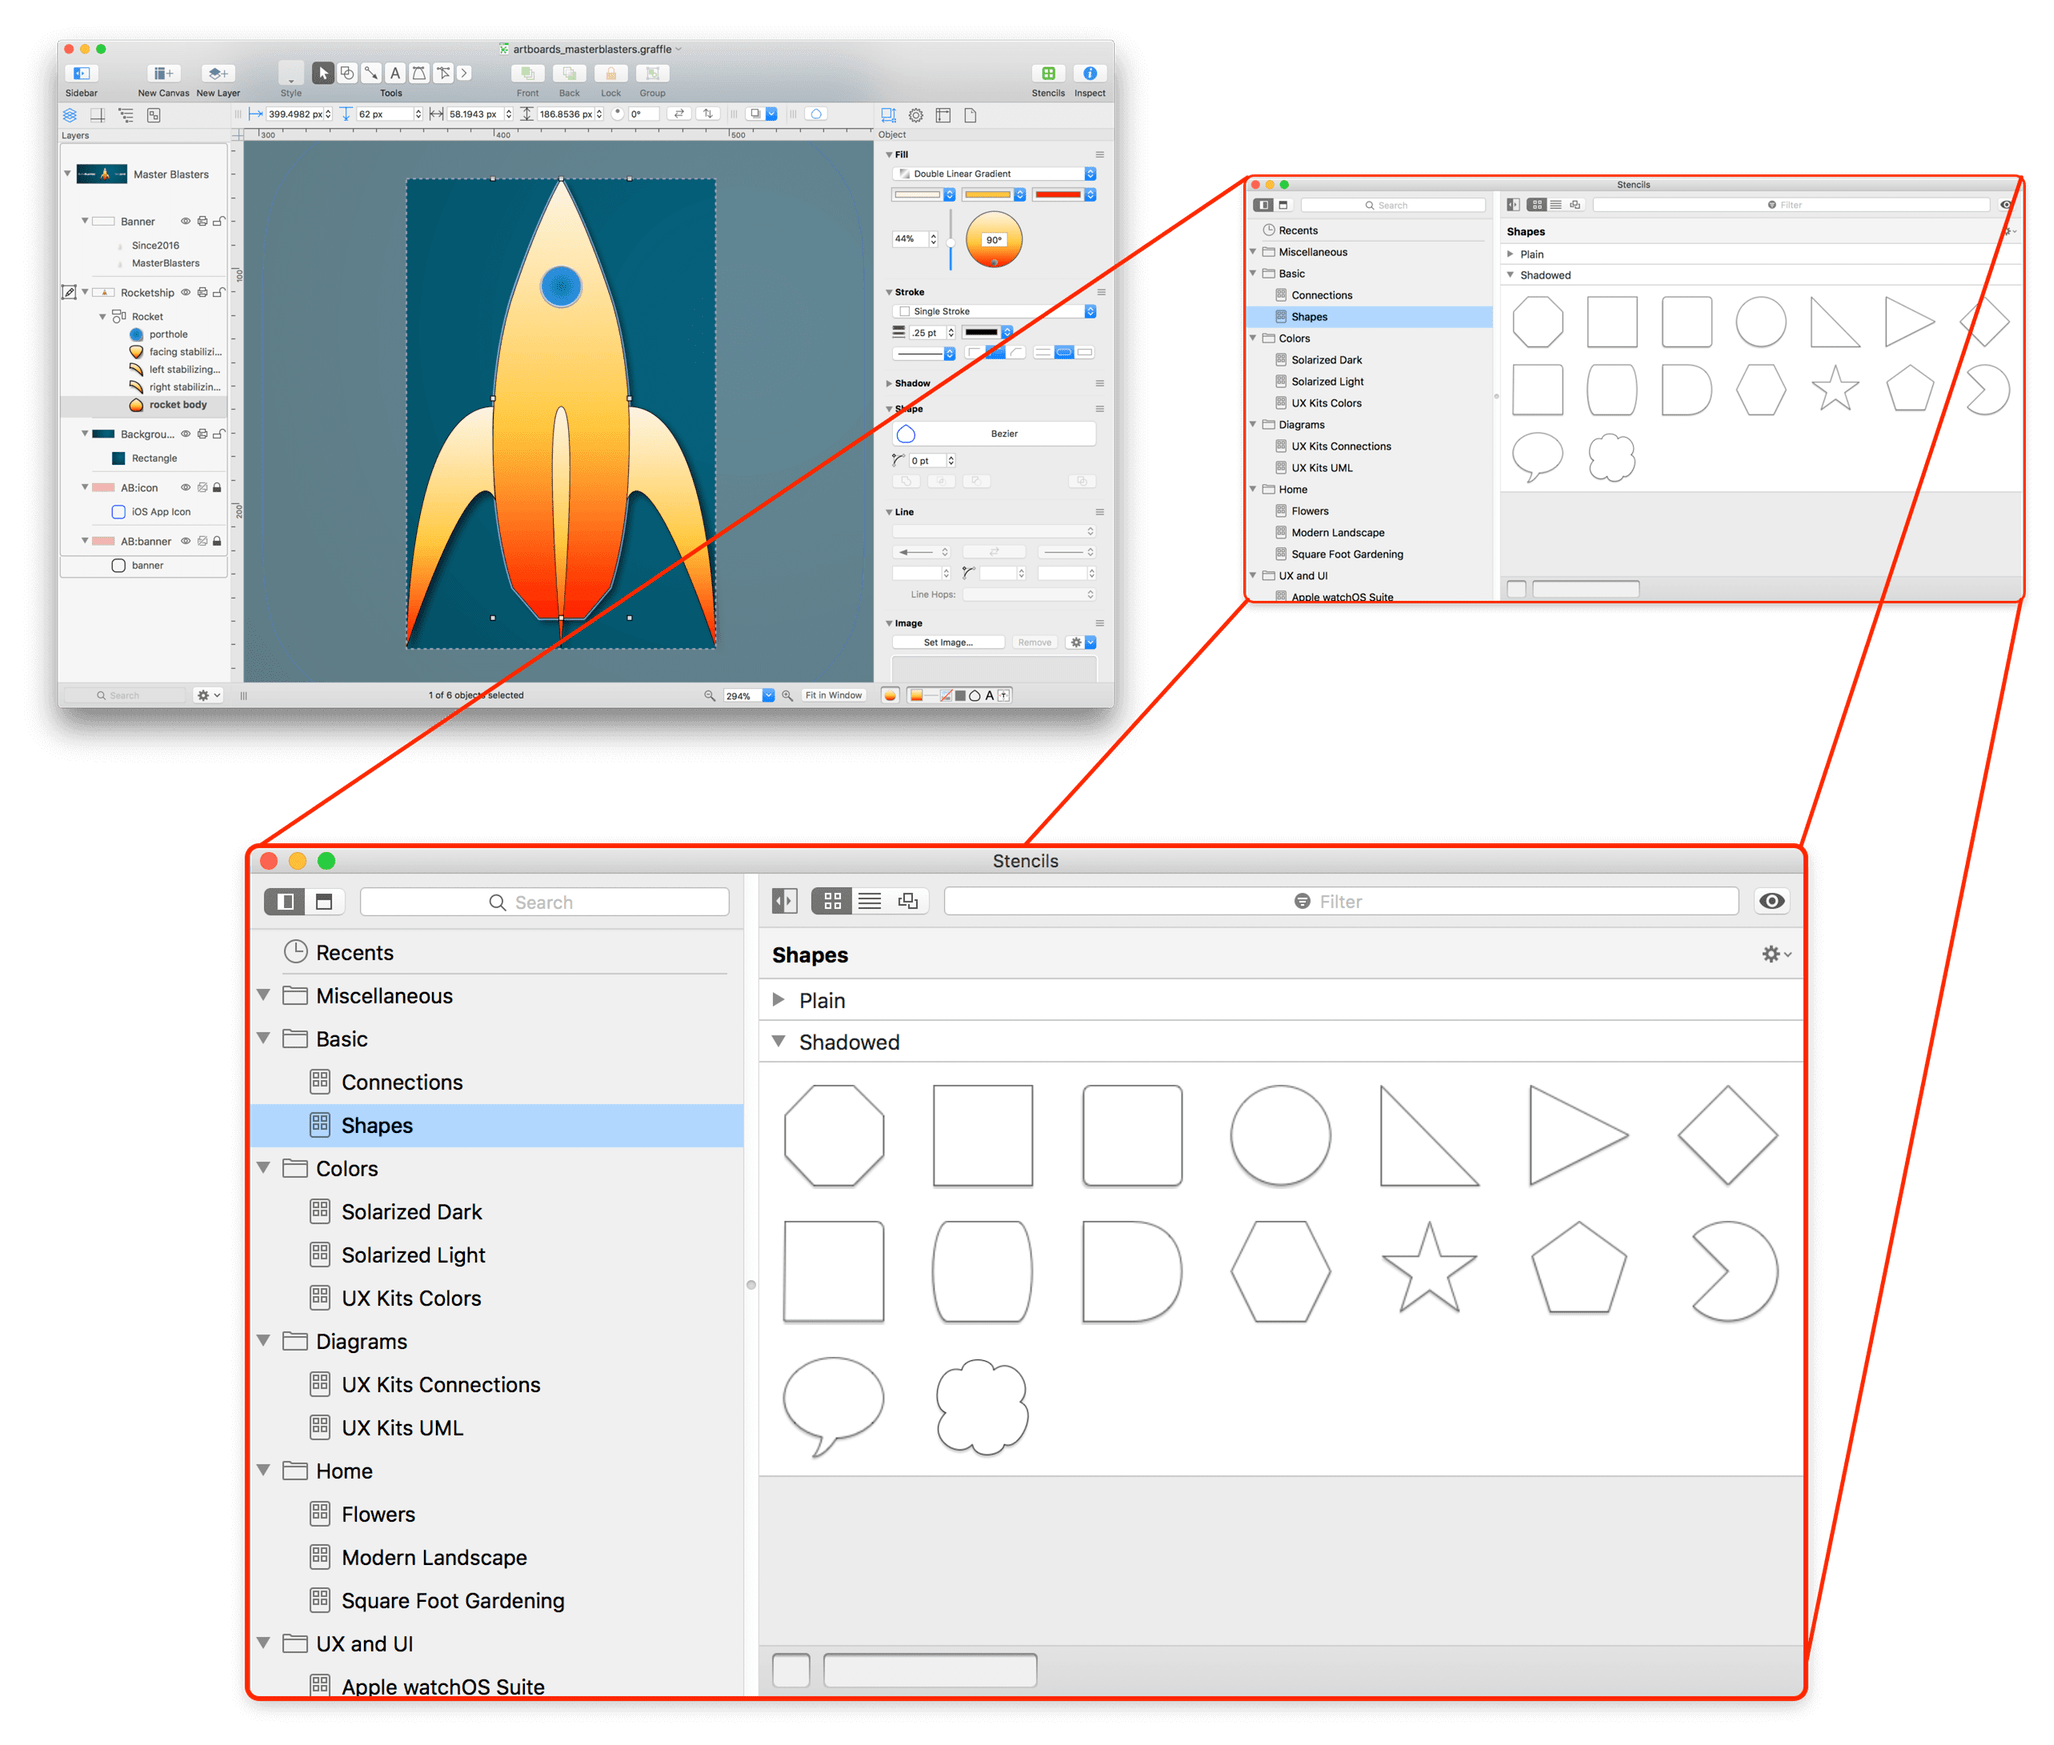 An exploding view of OmniGraffle, showing the Stencil Browser as a floating window, shown in a much larger scale than in the full window in the background.